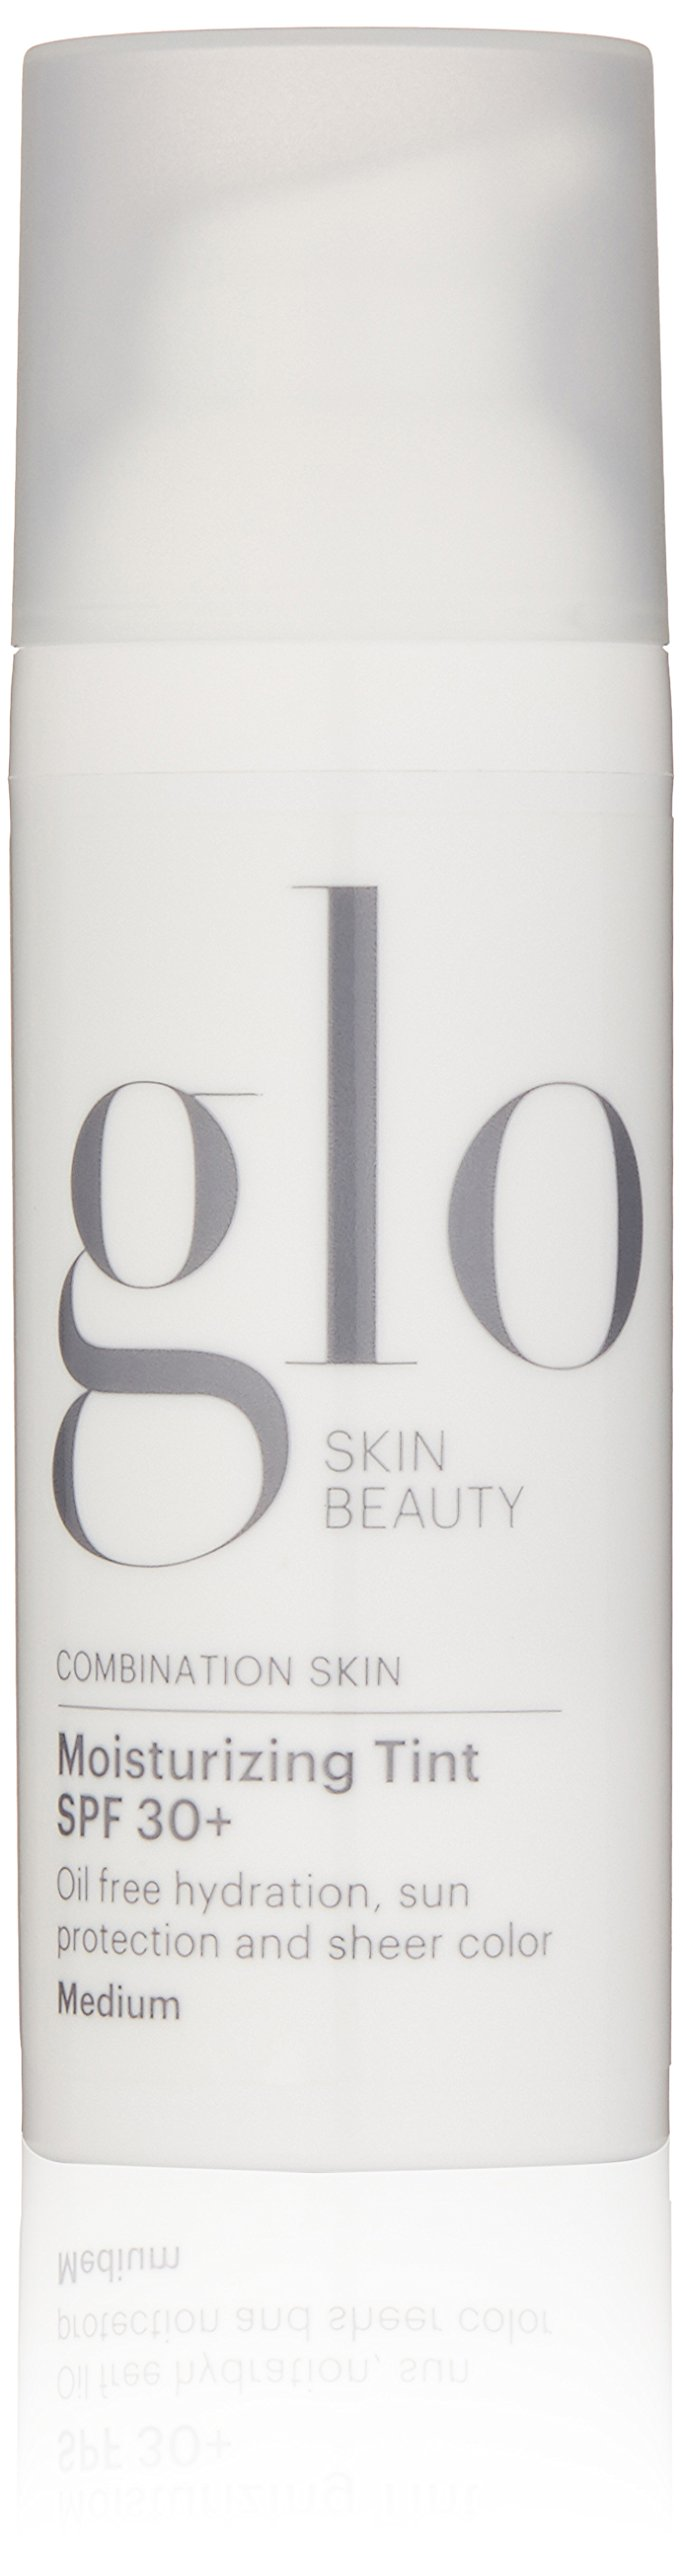 Glo Skin Beauty Moisturizing Tint SPF 30+ in Medium | Tinted Face Moisturizer with Sunscreen | 4 Shades, Dewy Finish by Glo Skin Beauty